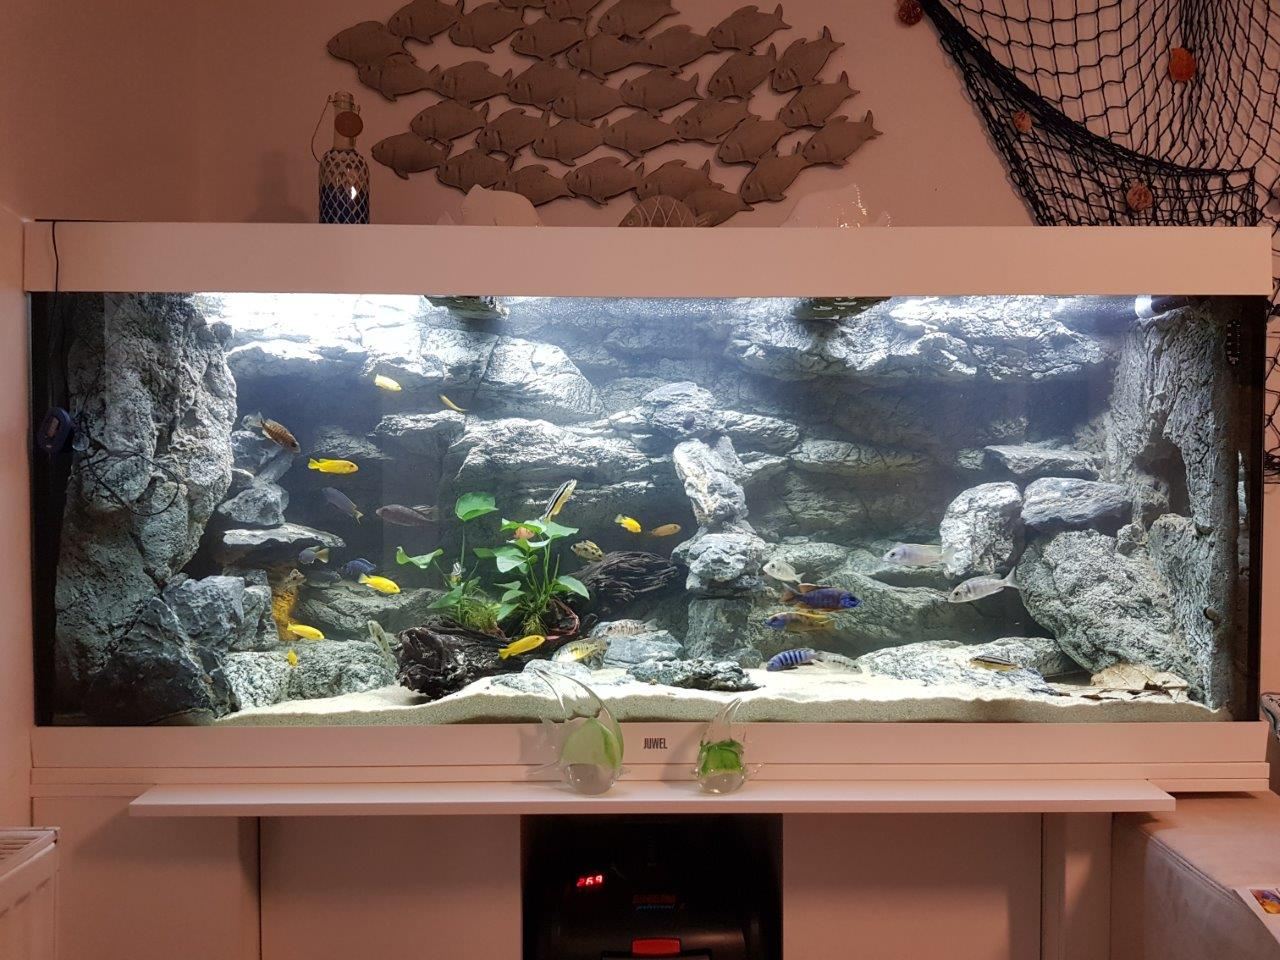 Alimar and Slimline XL backgrounds in Malawi Tank